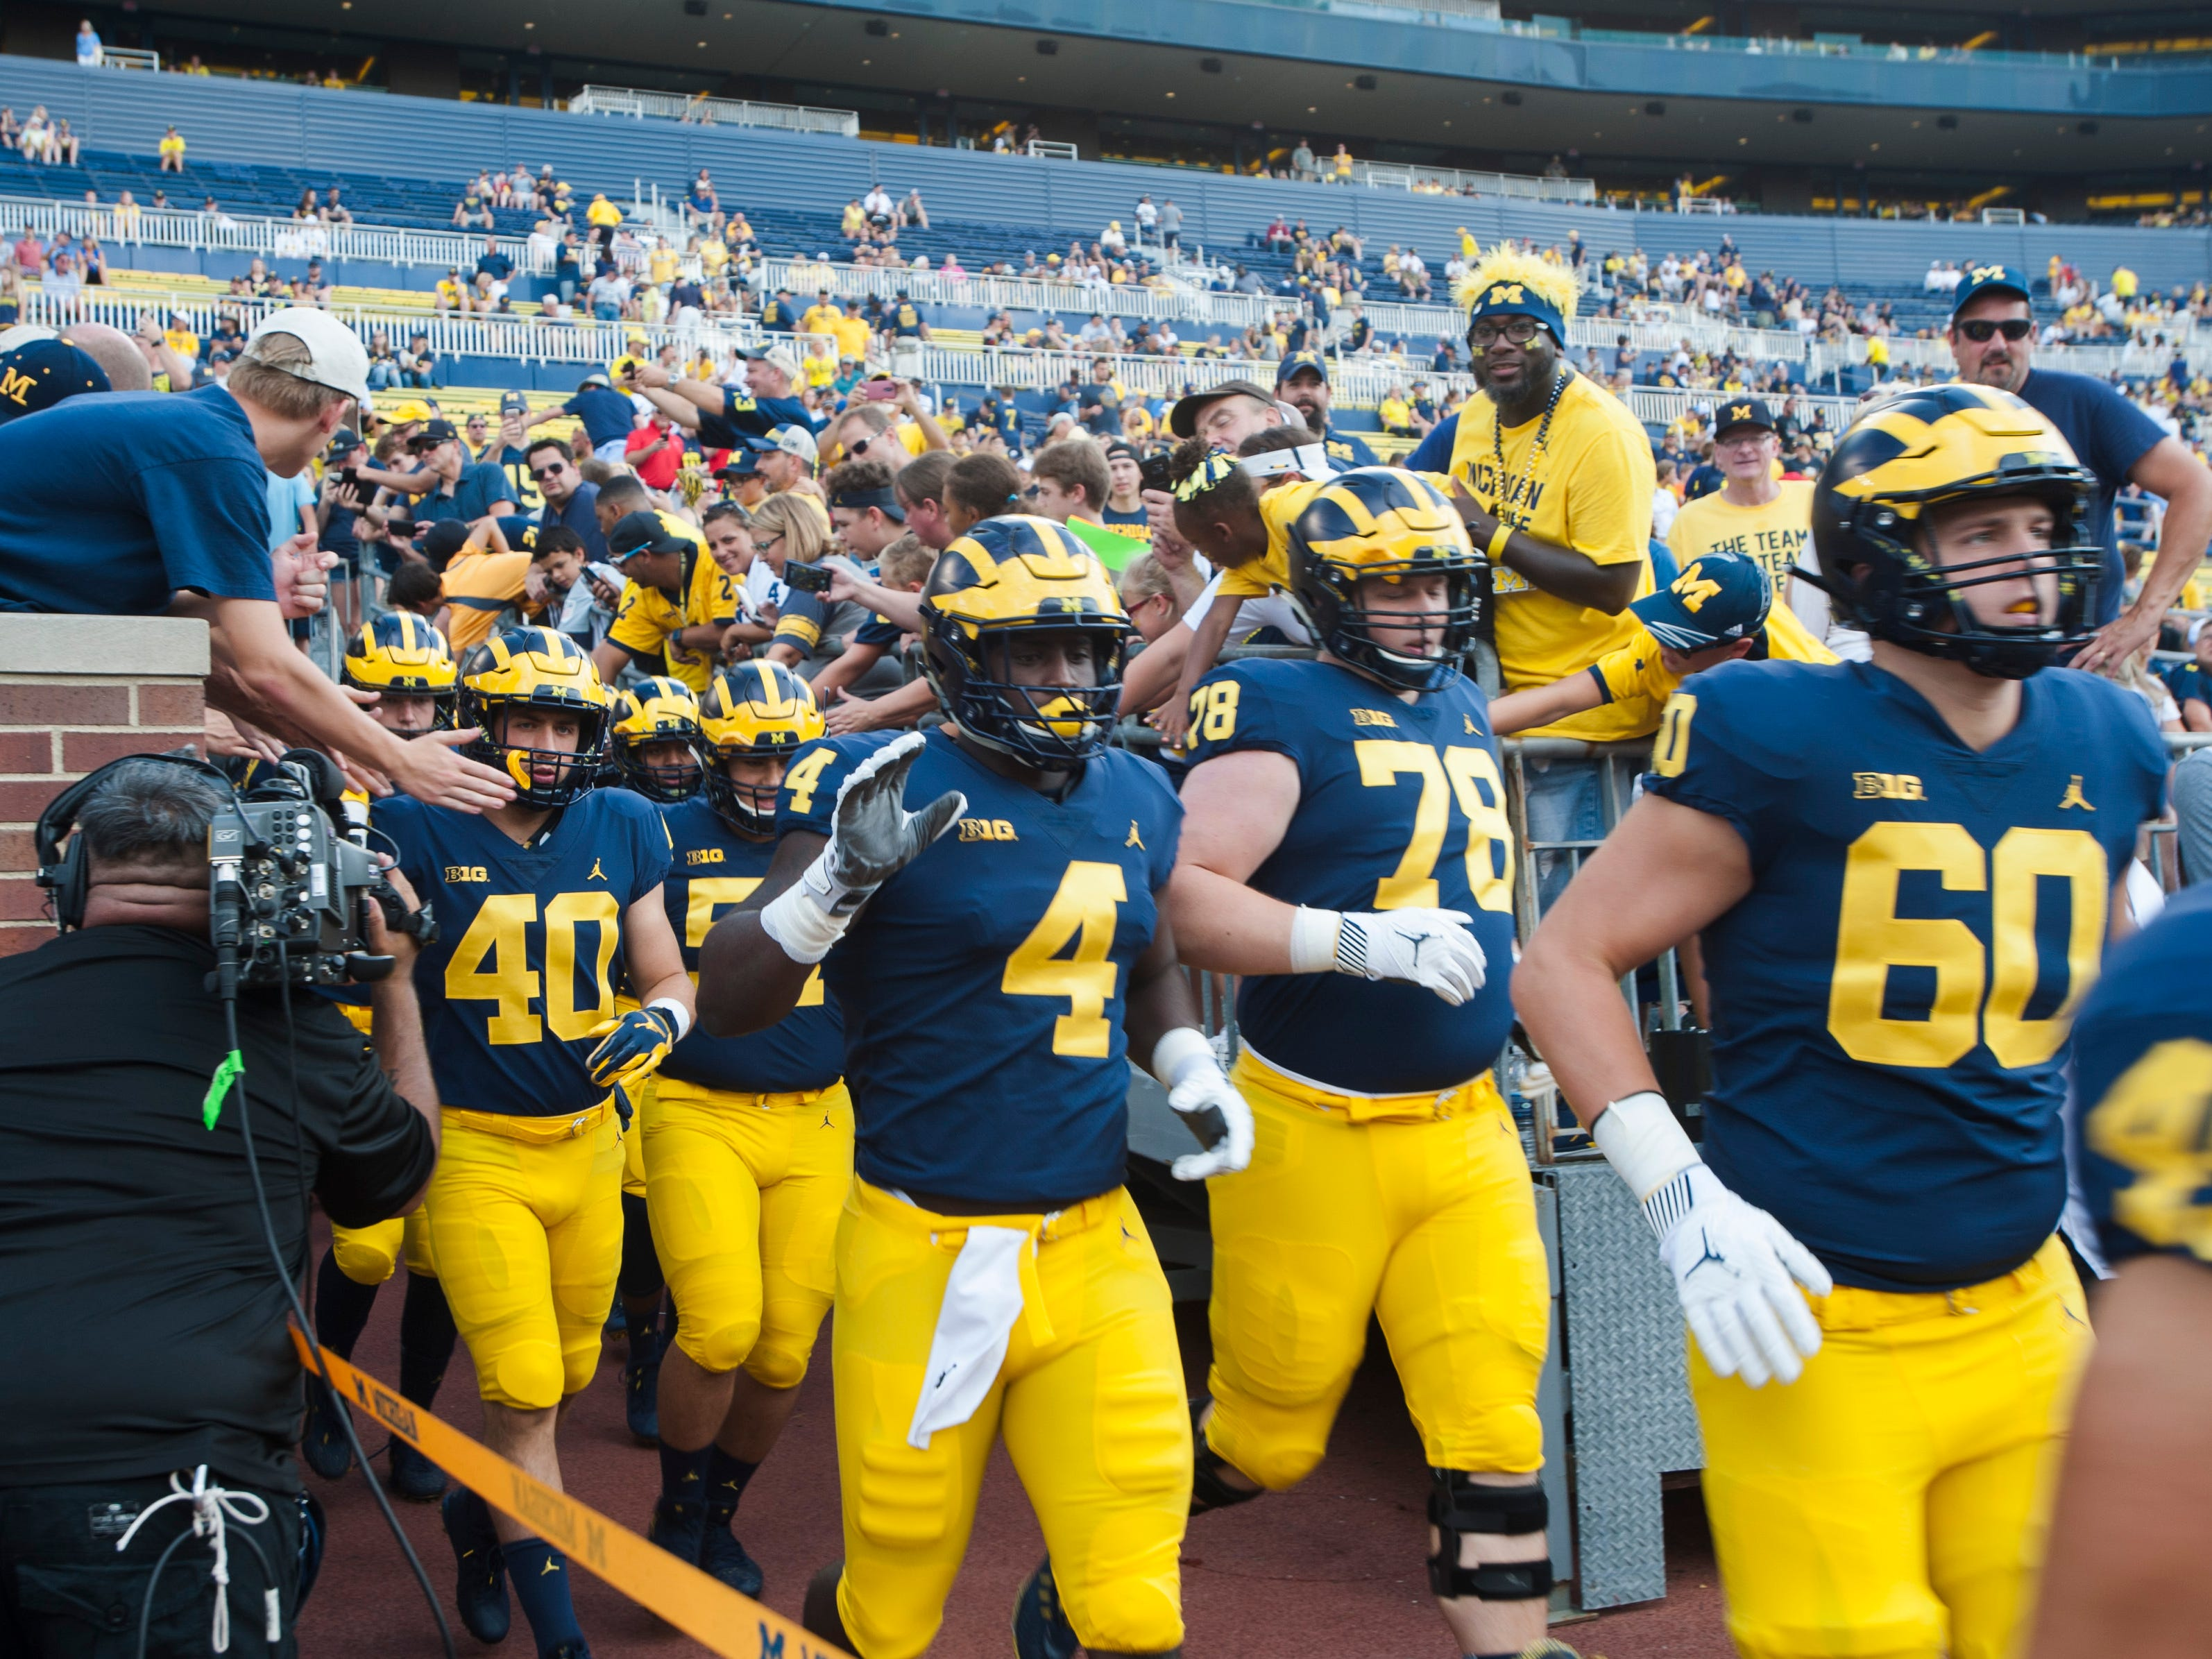 Michigan defensive players (from left) linebacker Ryan Nelson (40), defensive lineman Reuben Jones (4), Michigan offensive lineman Griffin Korican (78) and tight end Ryan Hayes (60) jog out of the Michigan Stadium tunnel for pre-game warmups before facing SMU Saturday, September 15, 2018.